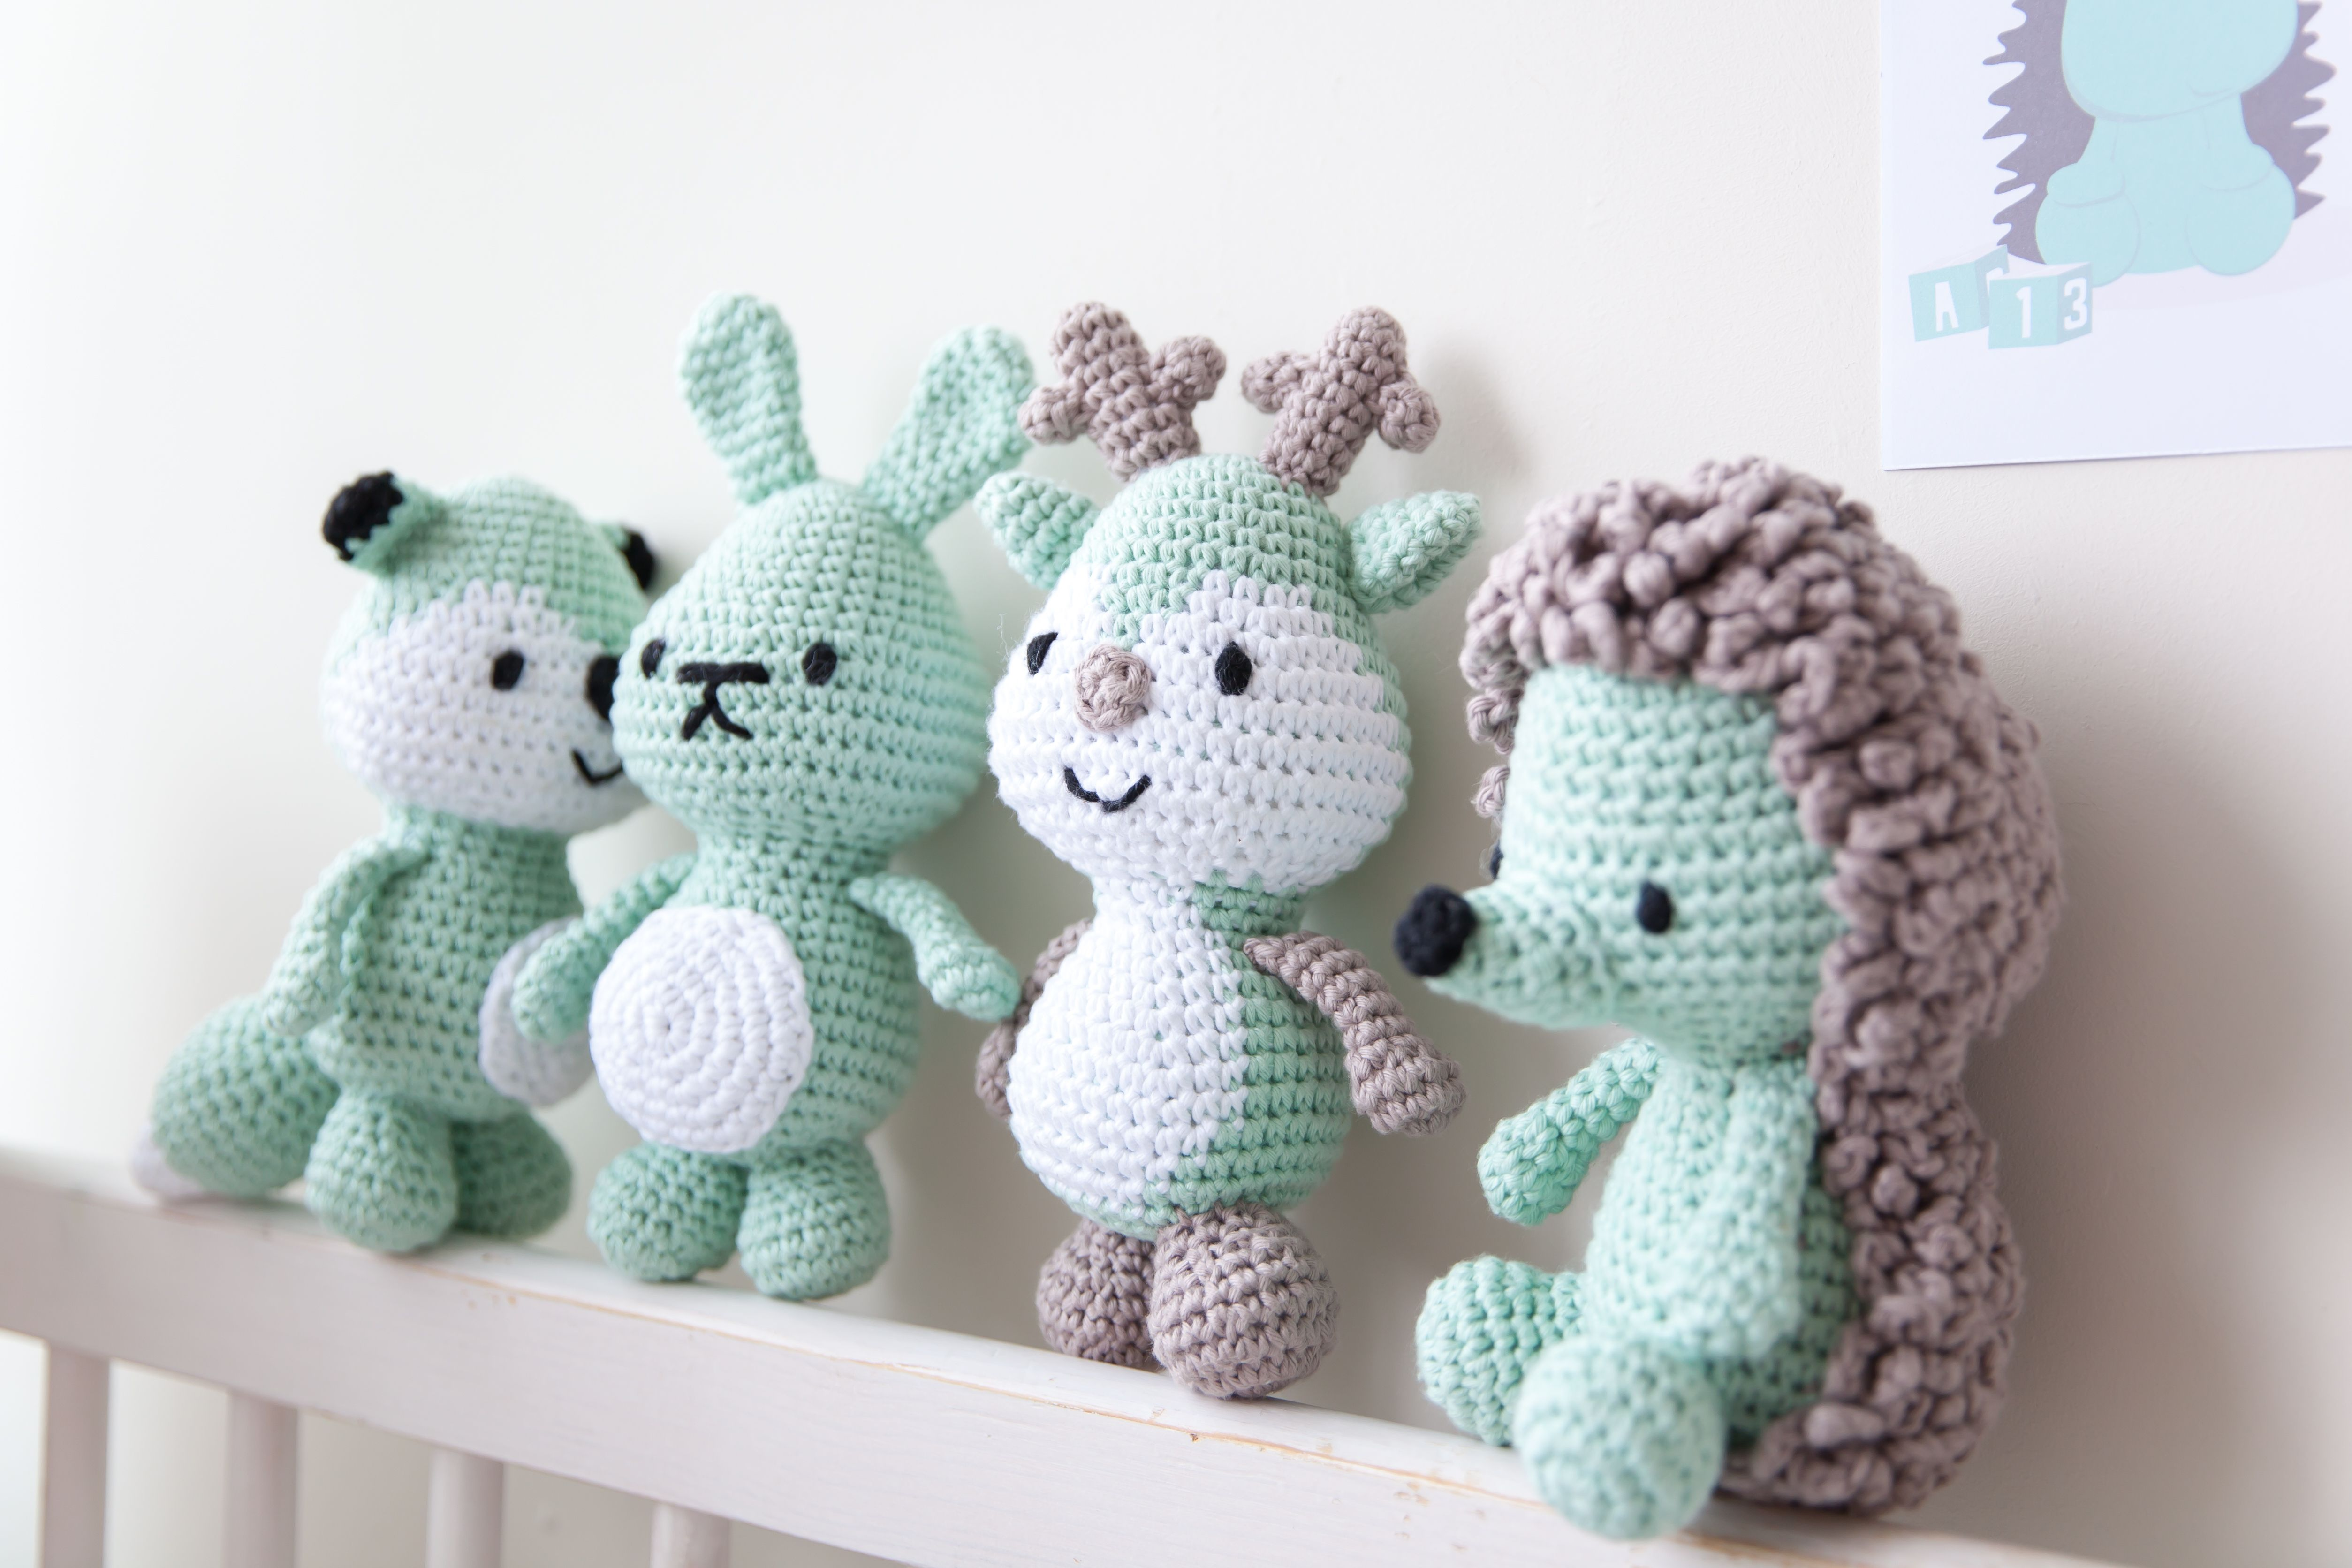 How to Crochet: Amigurumi Basics: 6 Steps (with Pictures)